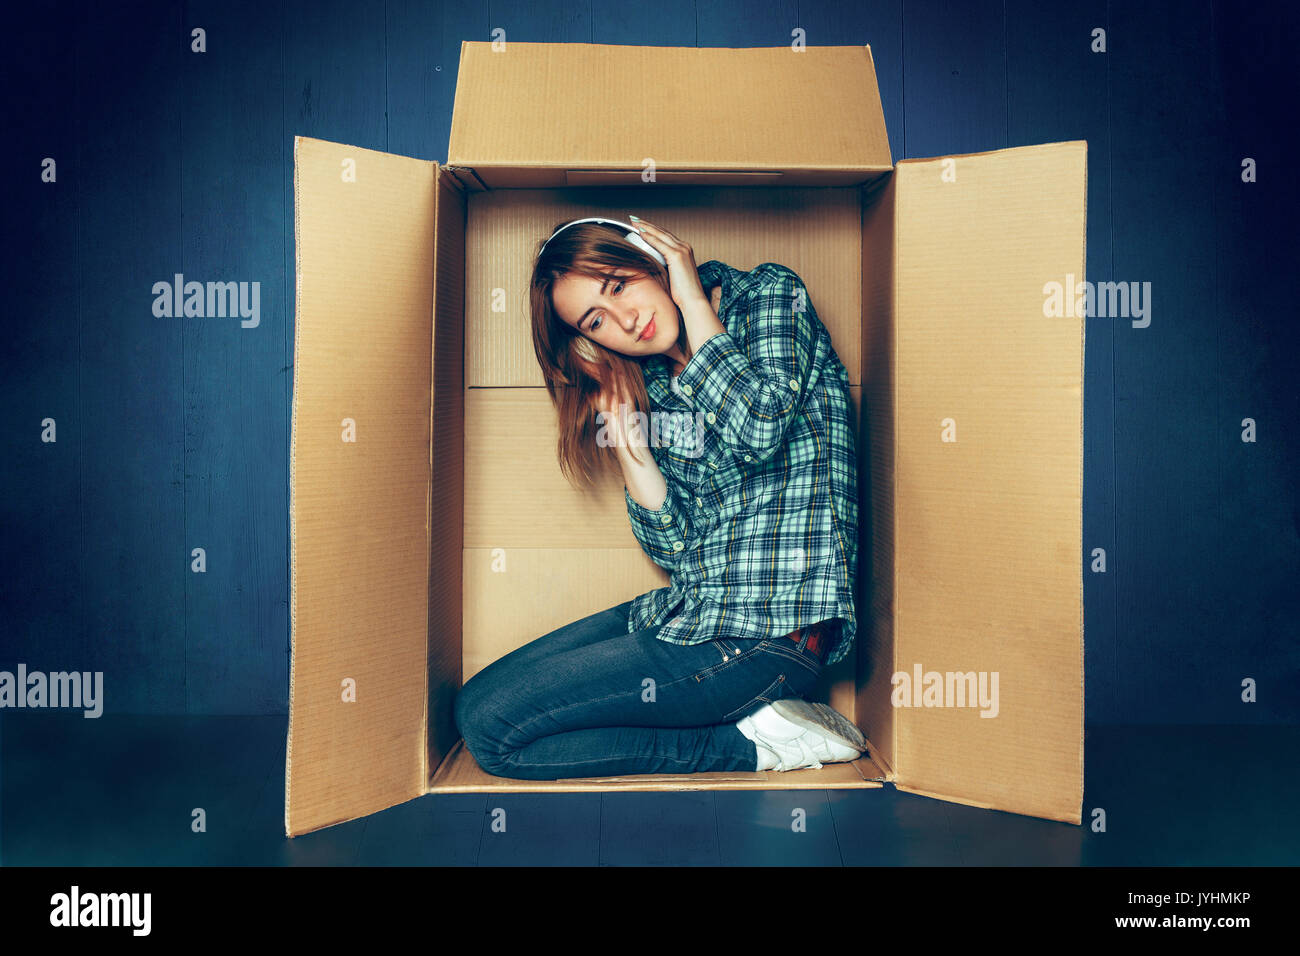 Introvert concept. Woman sitting inside box and with headphones - Stock Image